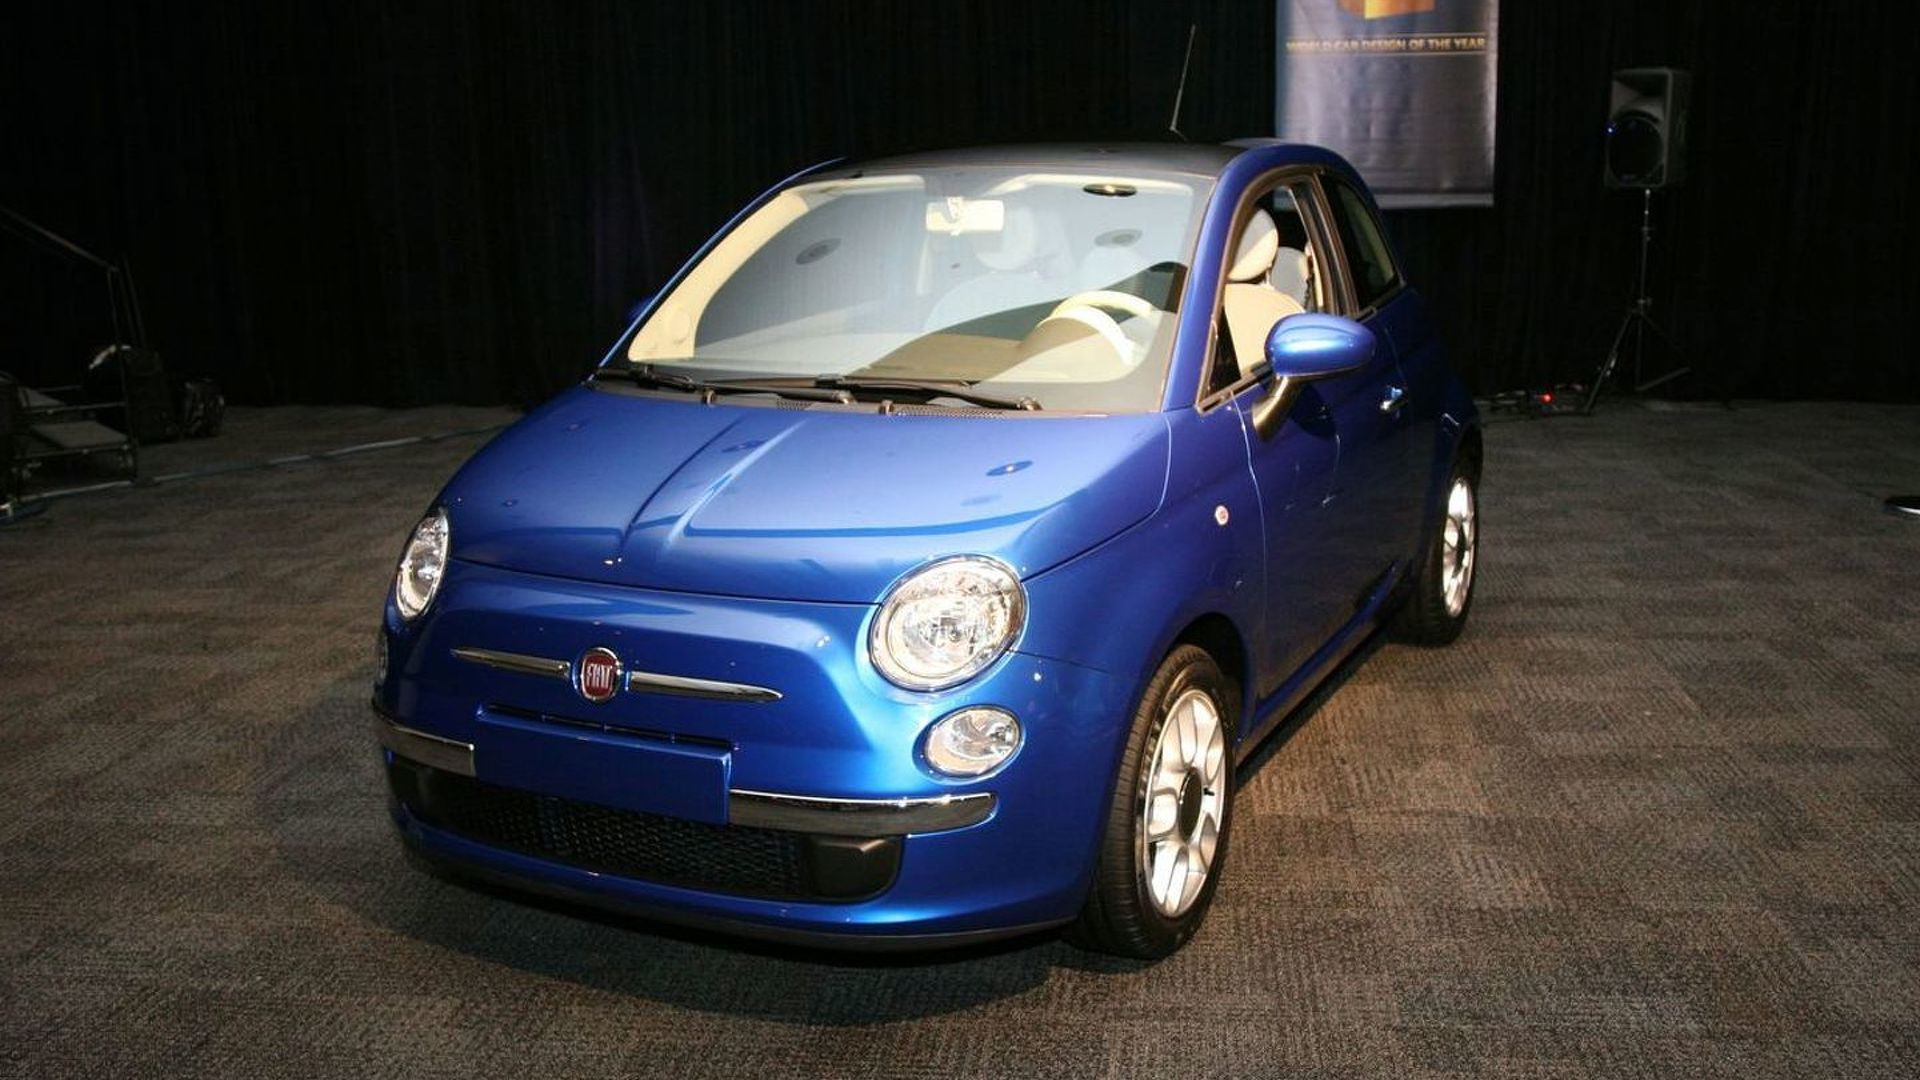 Fiat 500 Declared 2009 World Car Design of the Year